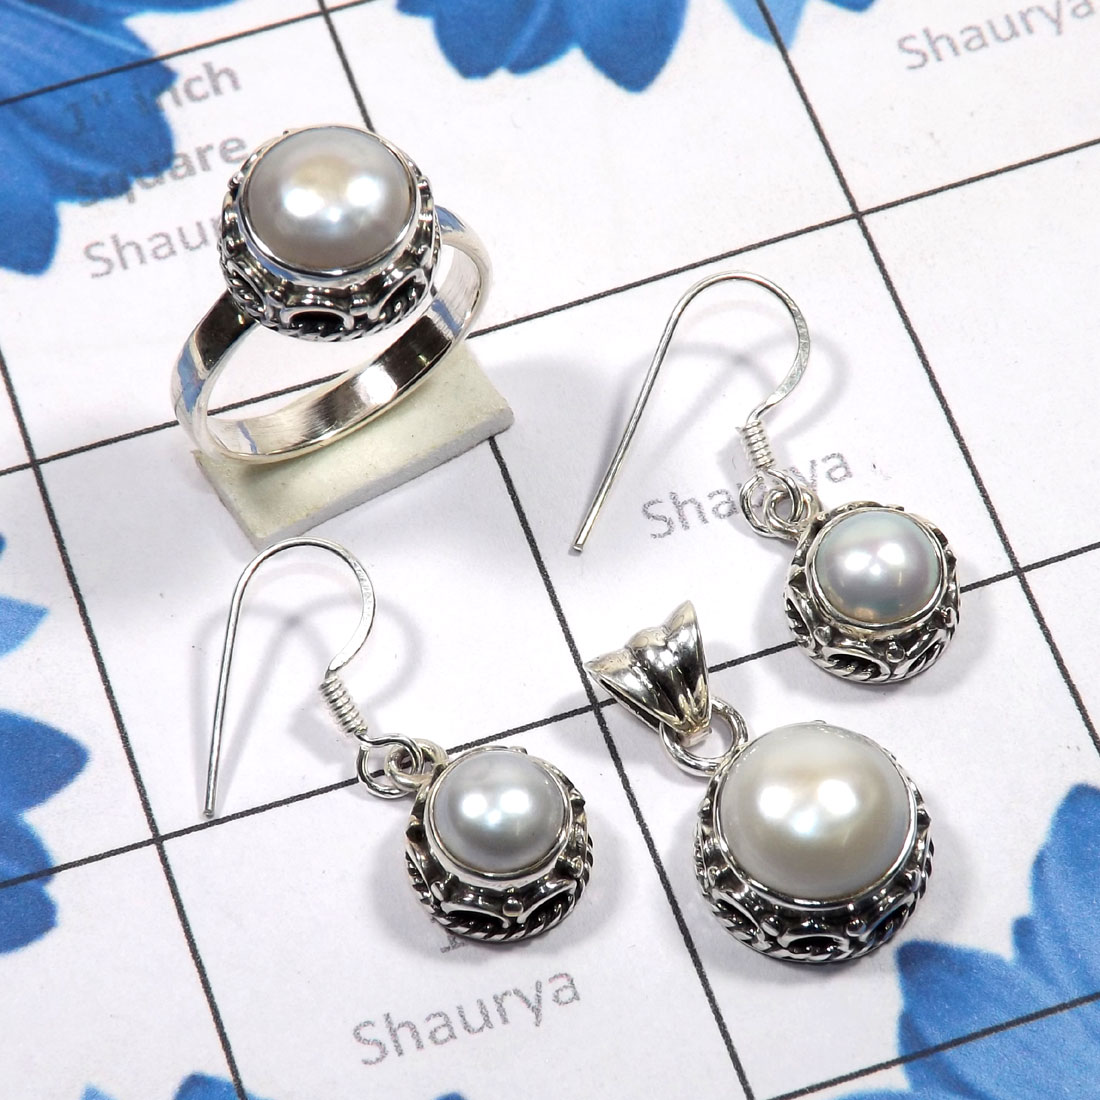 3 Pcs Pearl Set B - PPS999-Natural Pearl Earring, Pendant, Ring 925 Sterling Silver